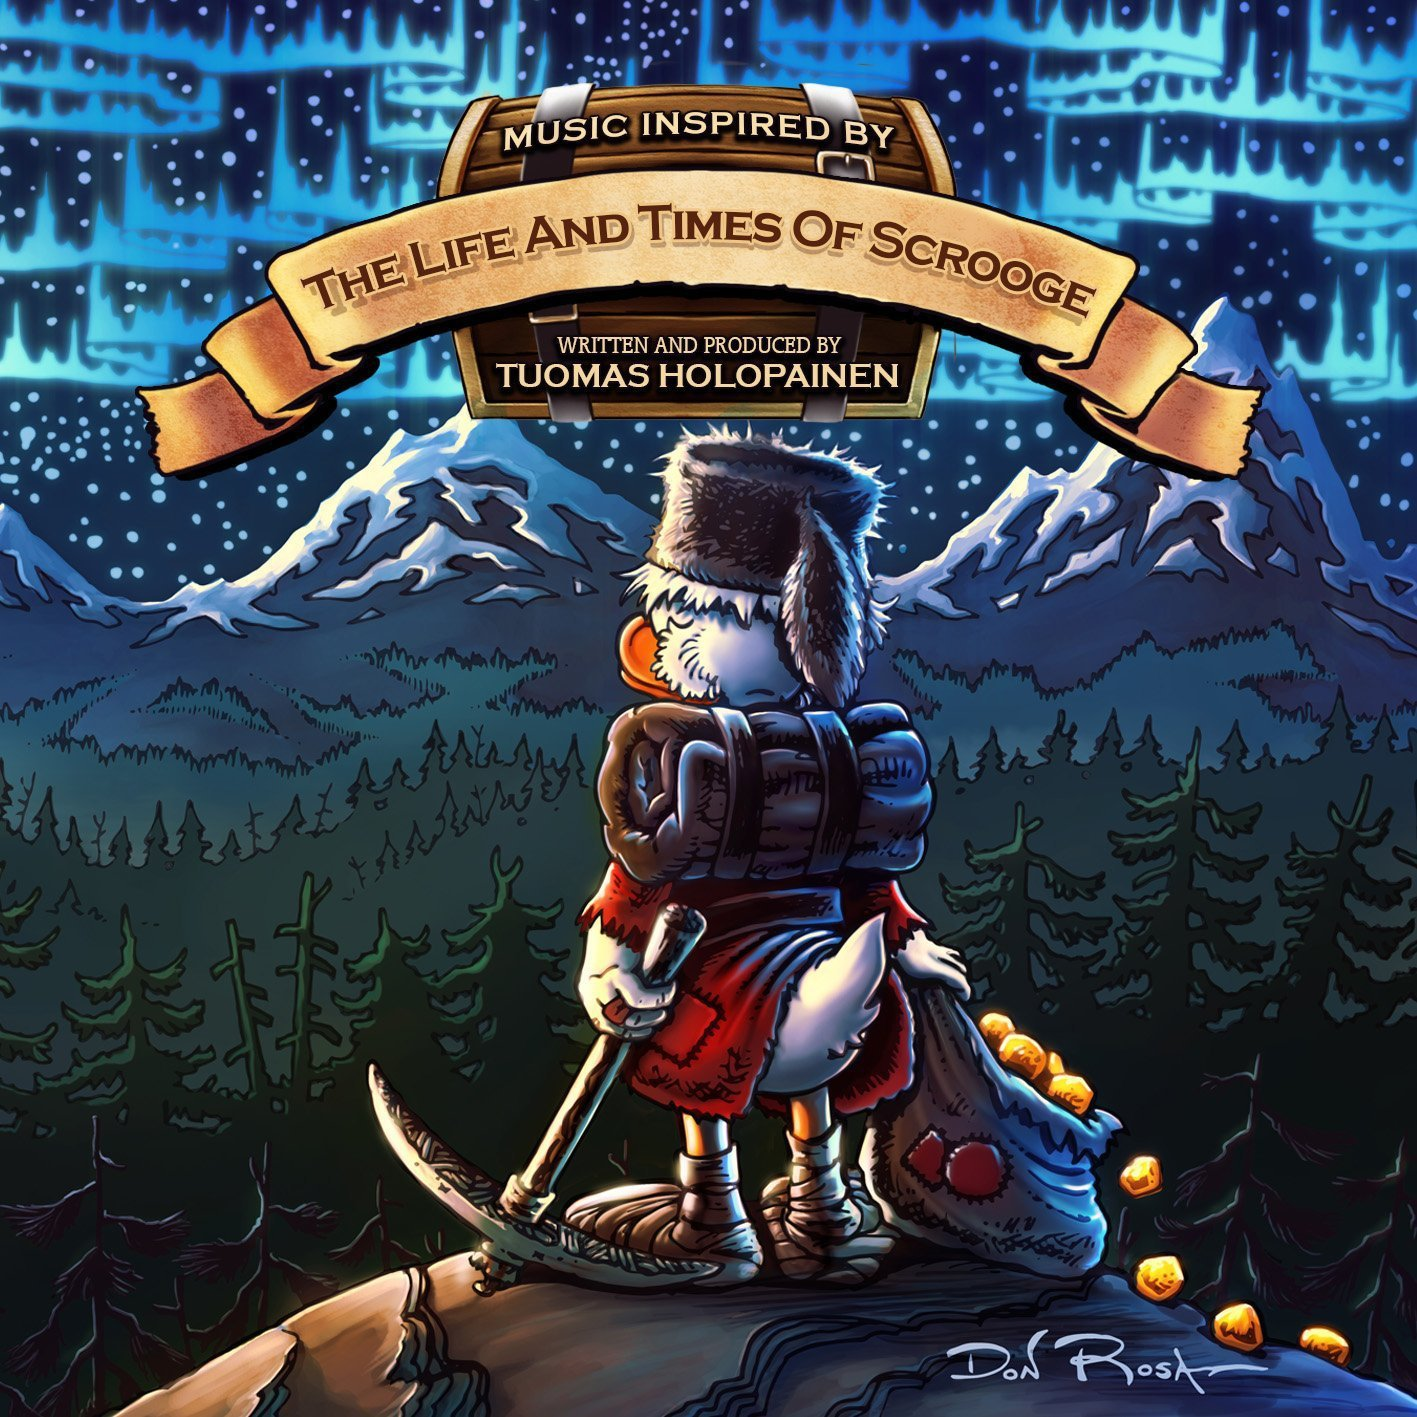 Tuomas Holopainen: The Life and Times of Scrooge